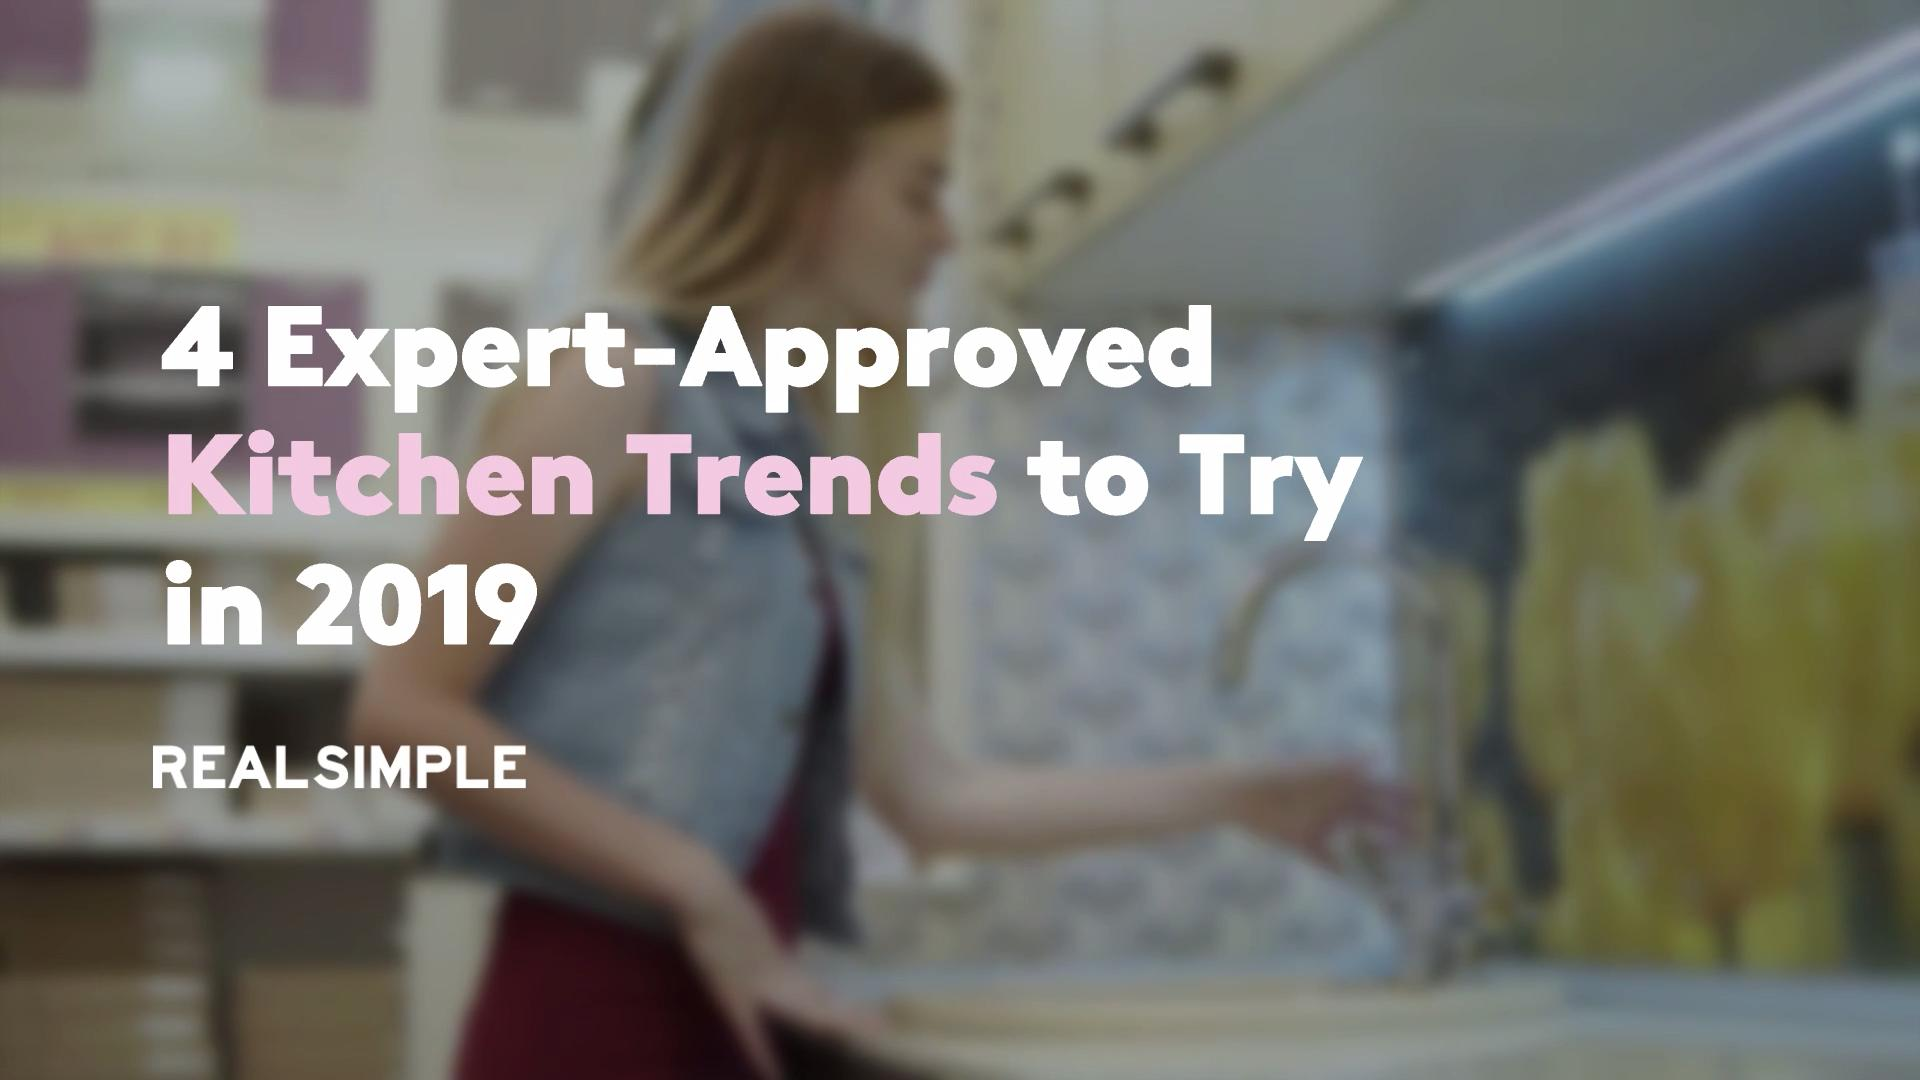 4 Expert-Approved Kitchen Trends to Try in 2019